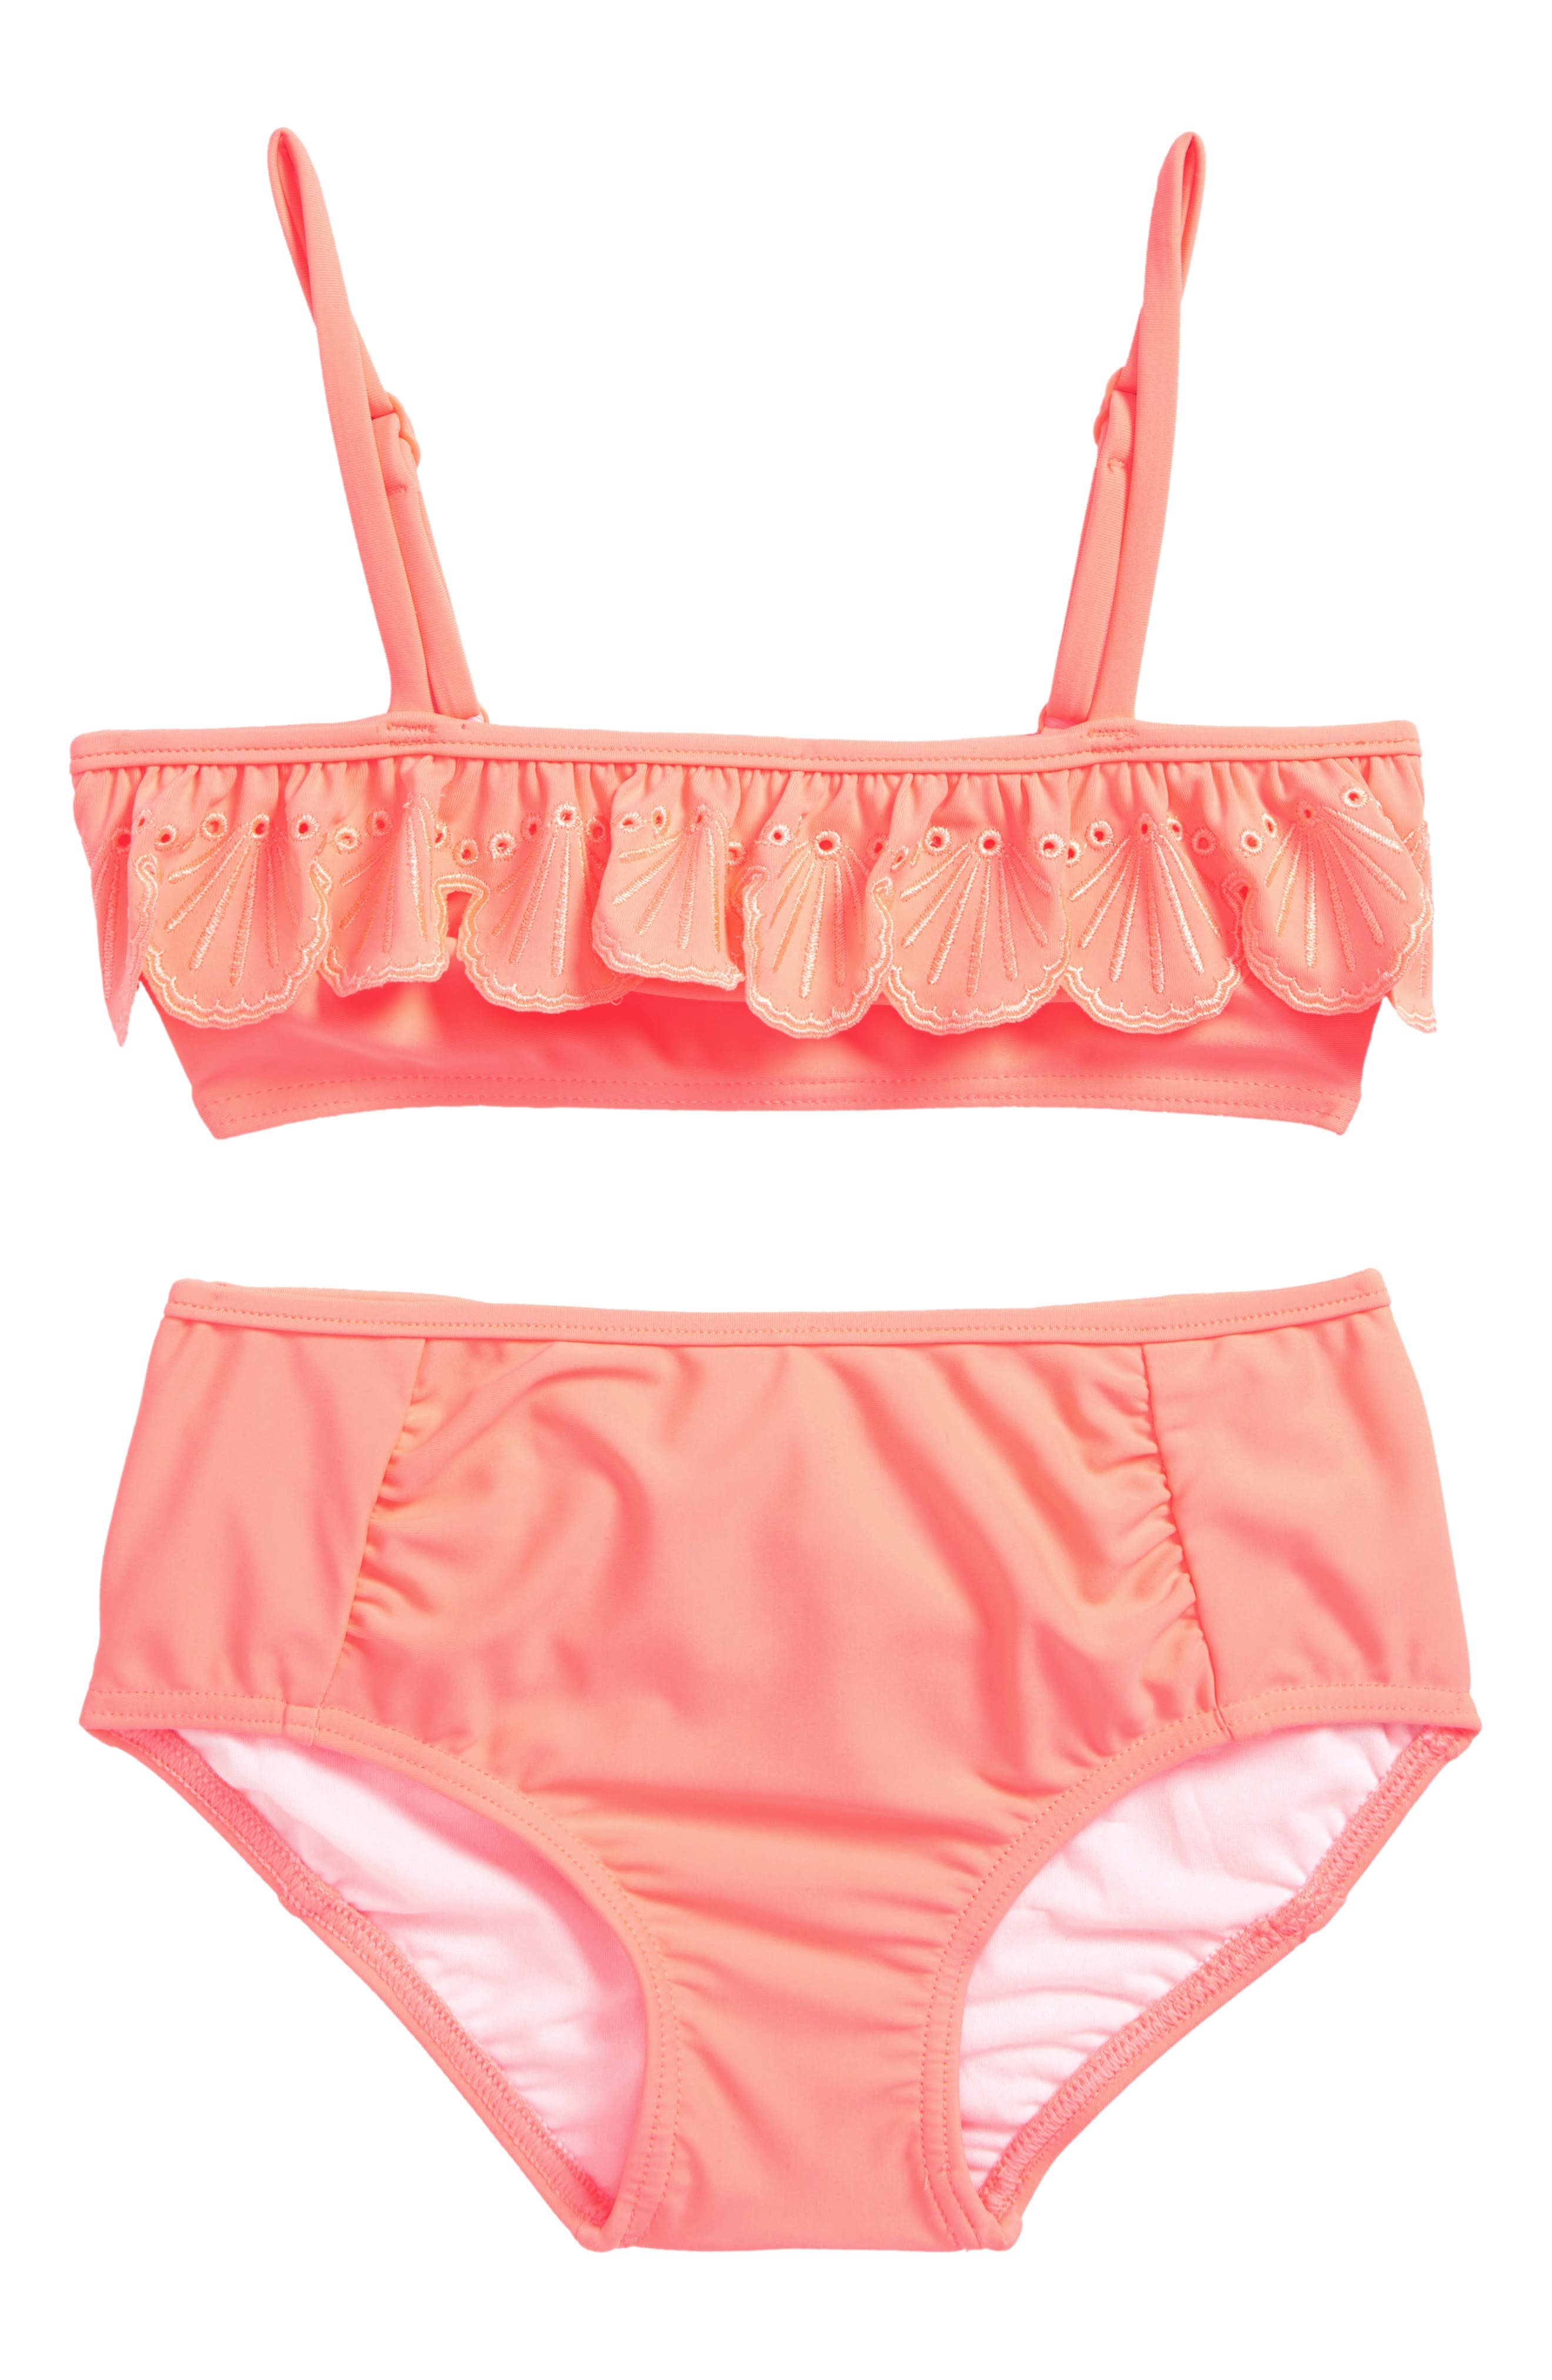 Sweet Summer Frill Two-Piece Swimsuit,                             Main thumbnail 1, color,                             950